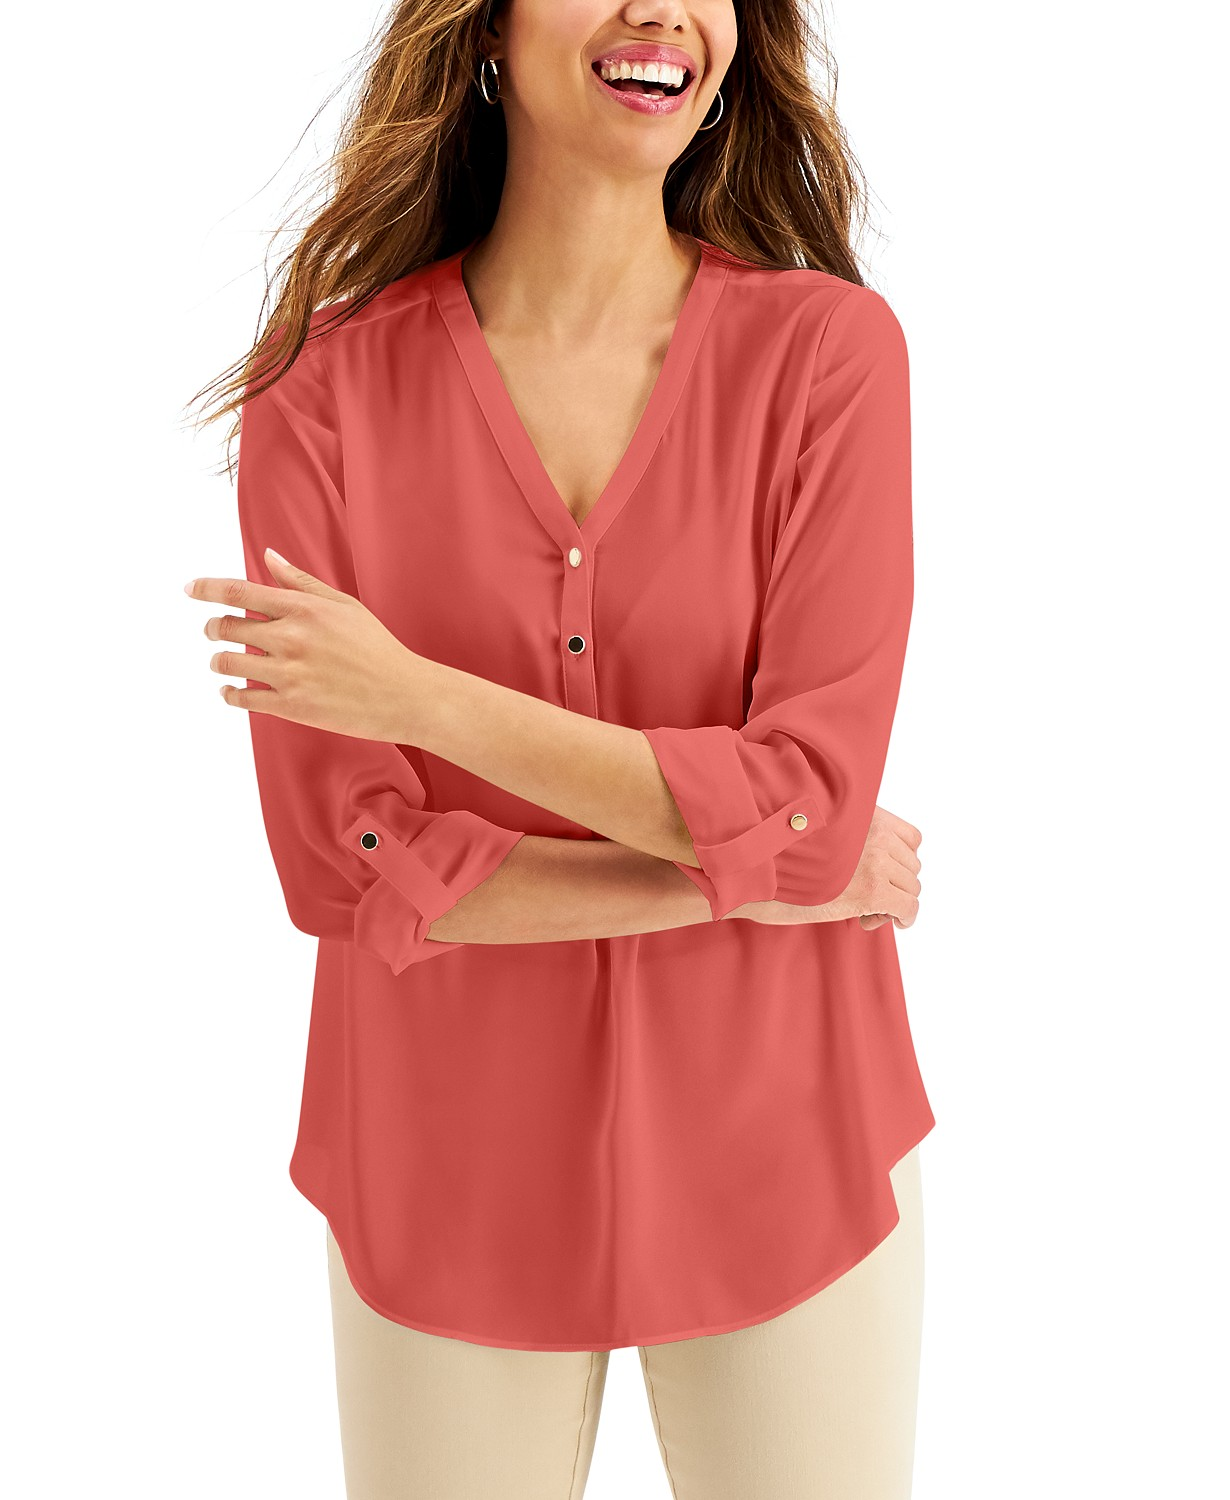 JM Collection Utility Top, Created for Macy's